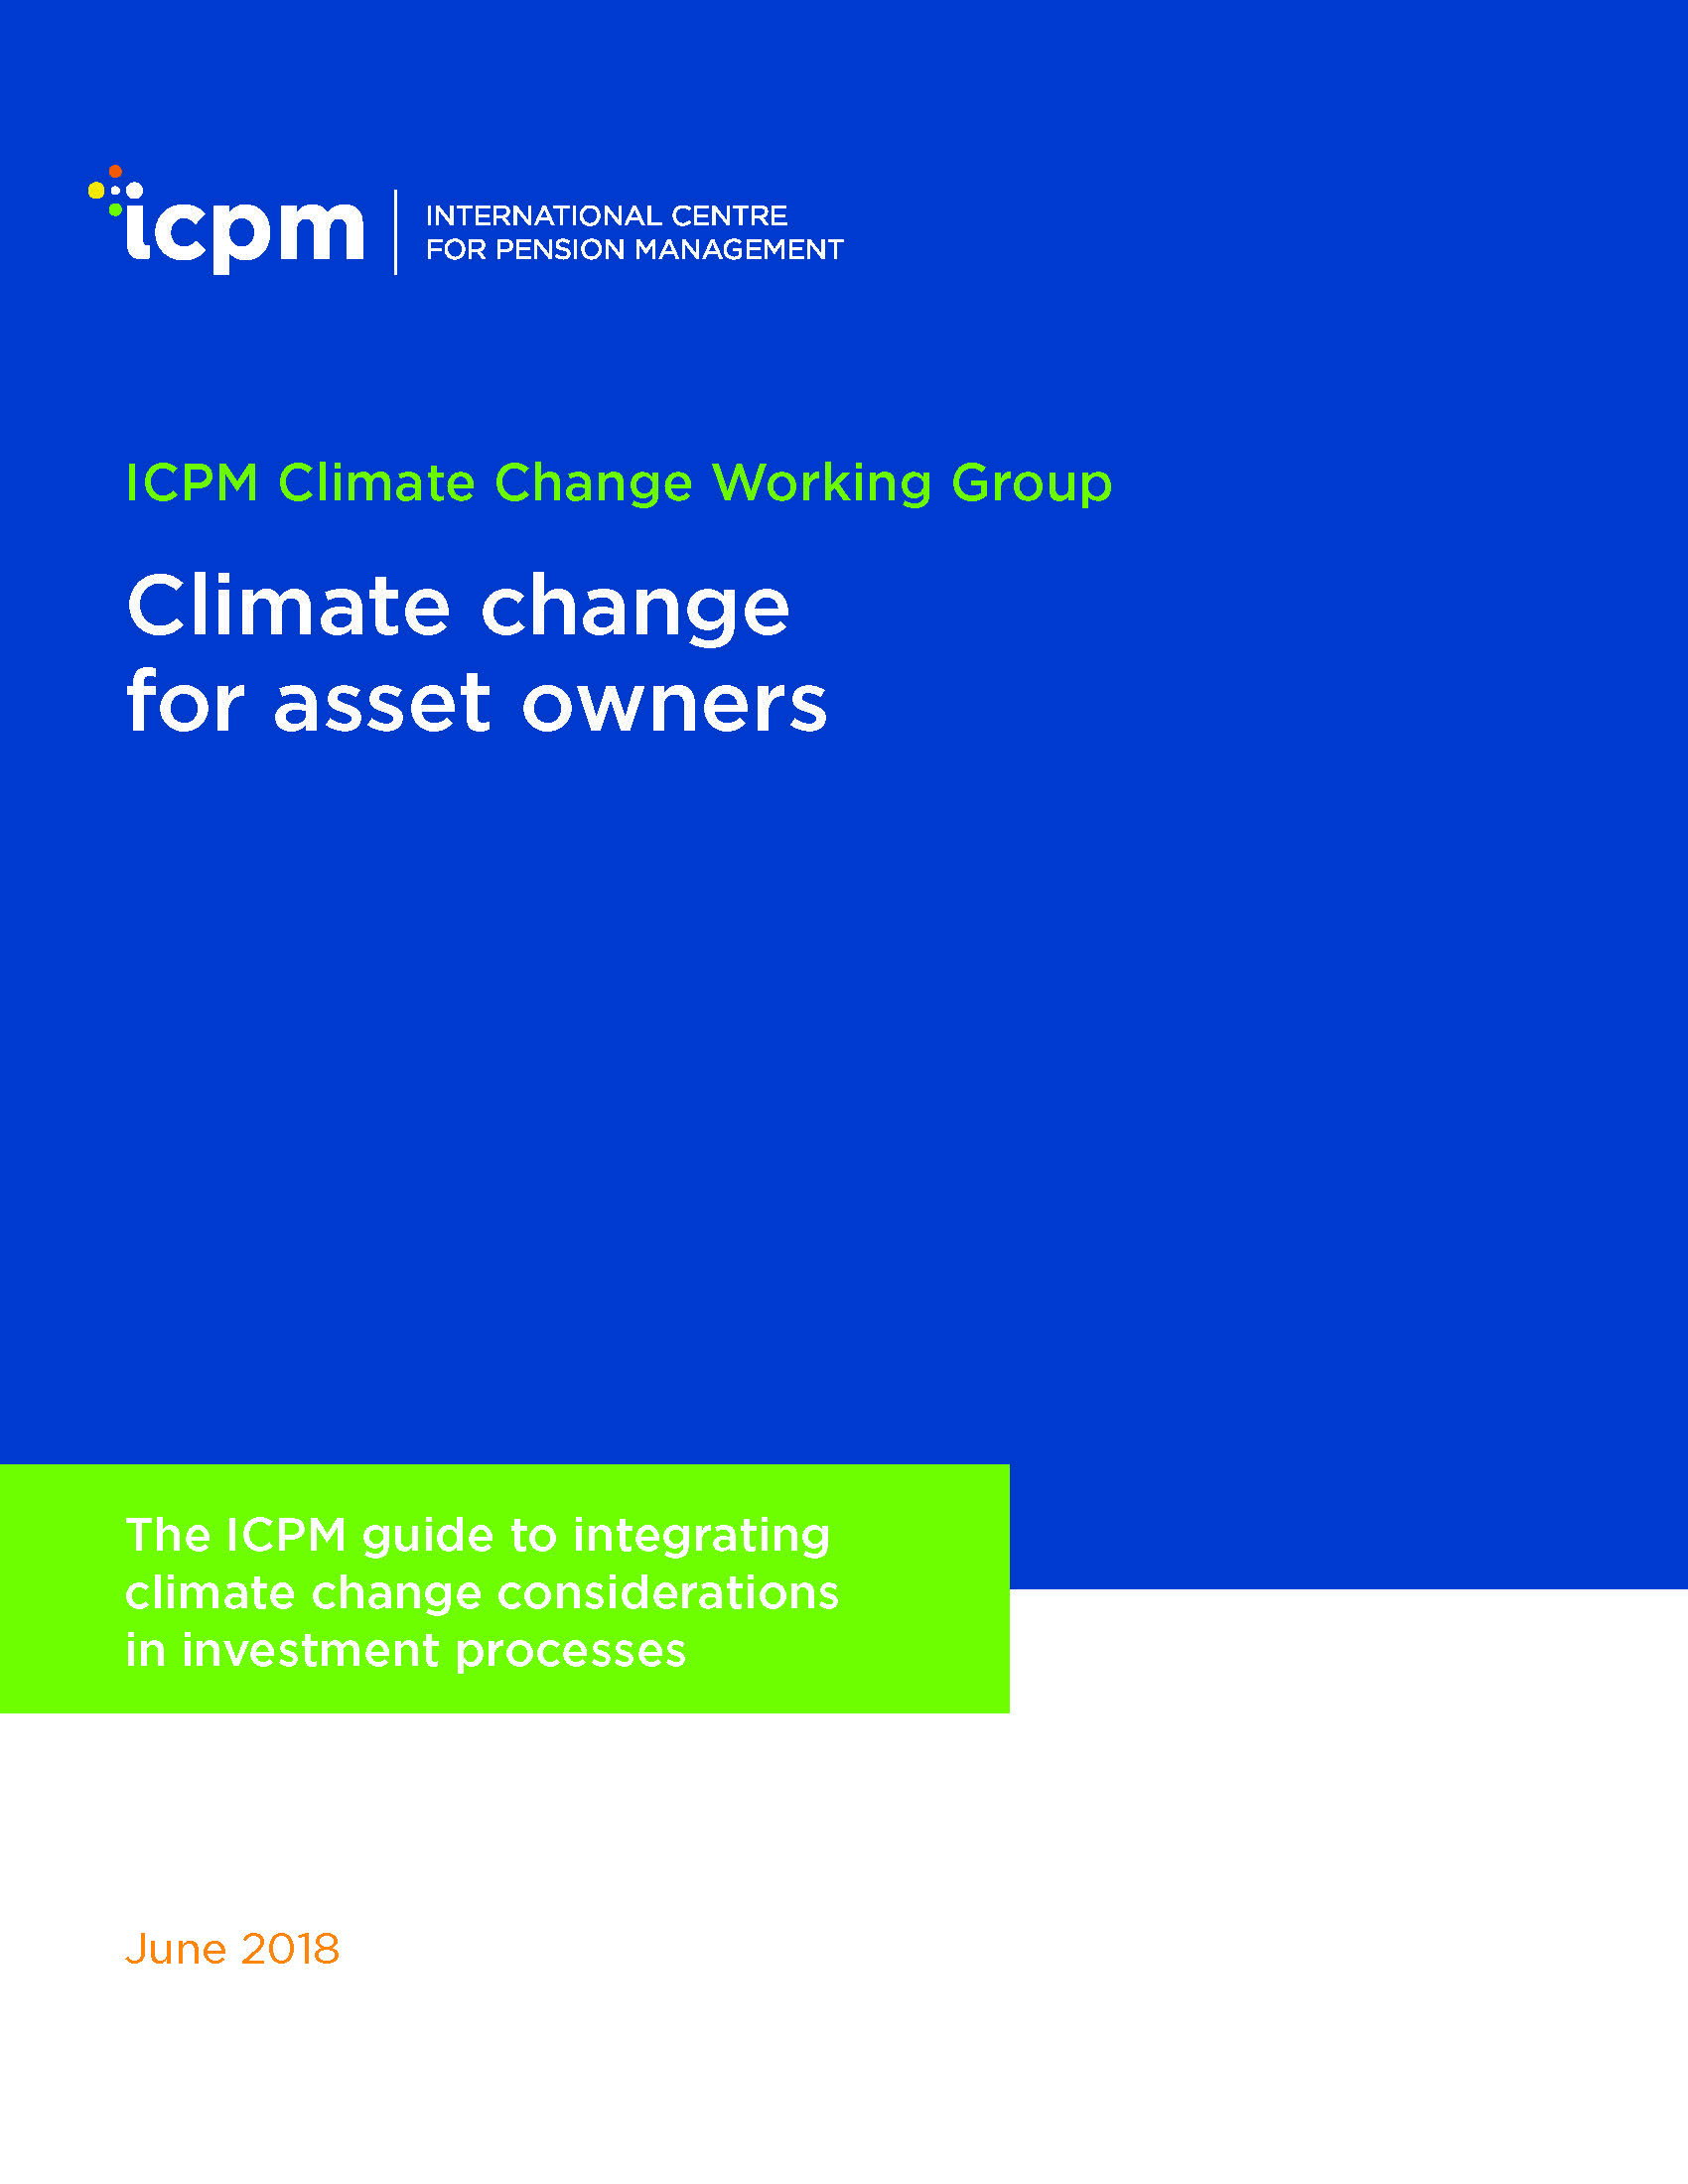 Pages from ICPM_Climate-Change-Guide_FINAL